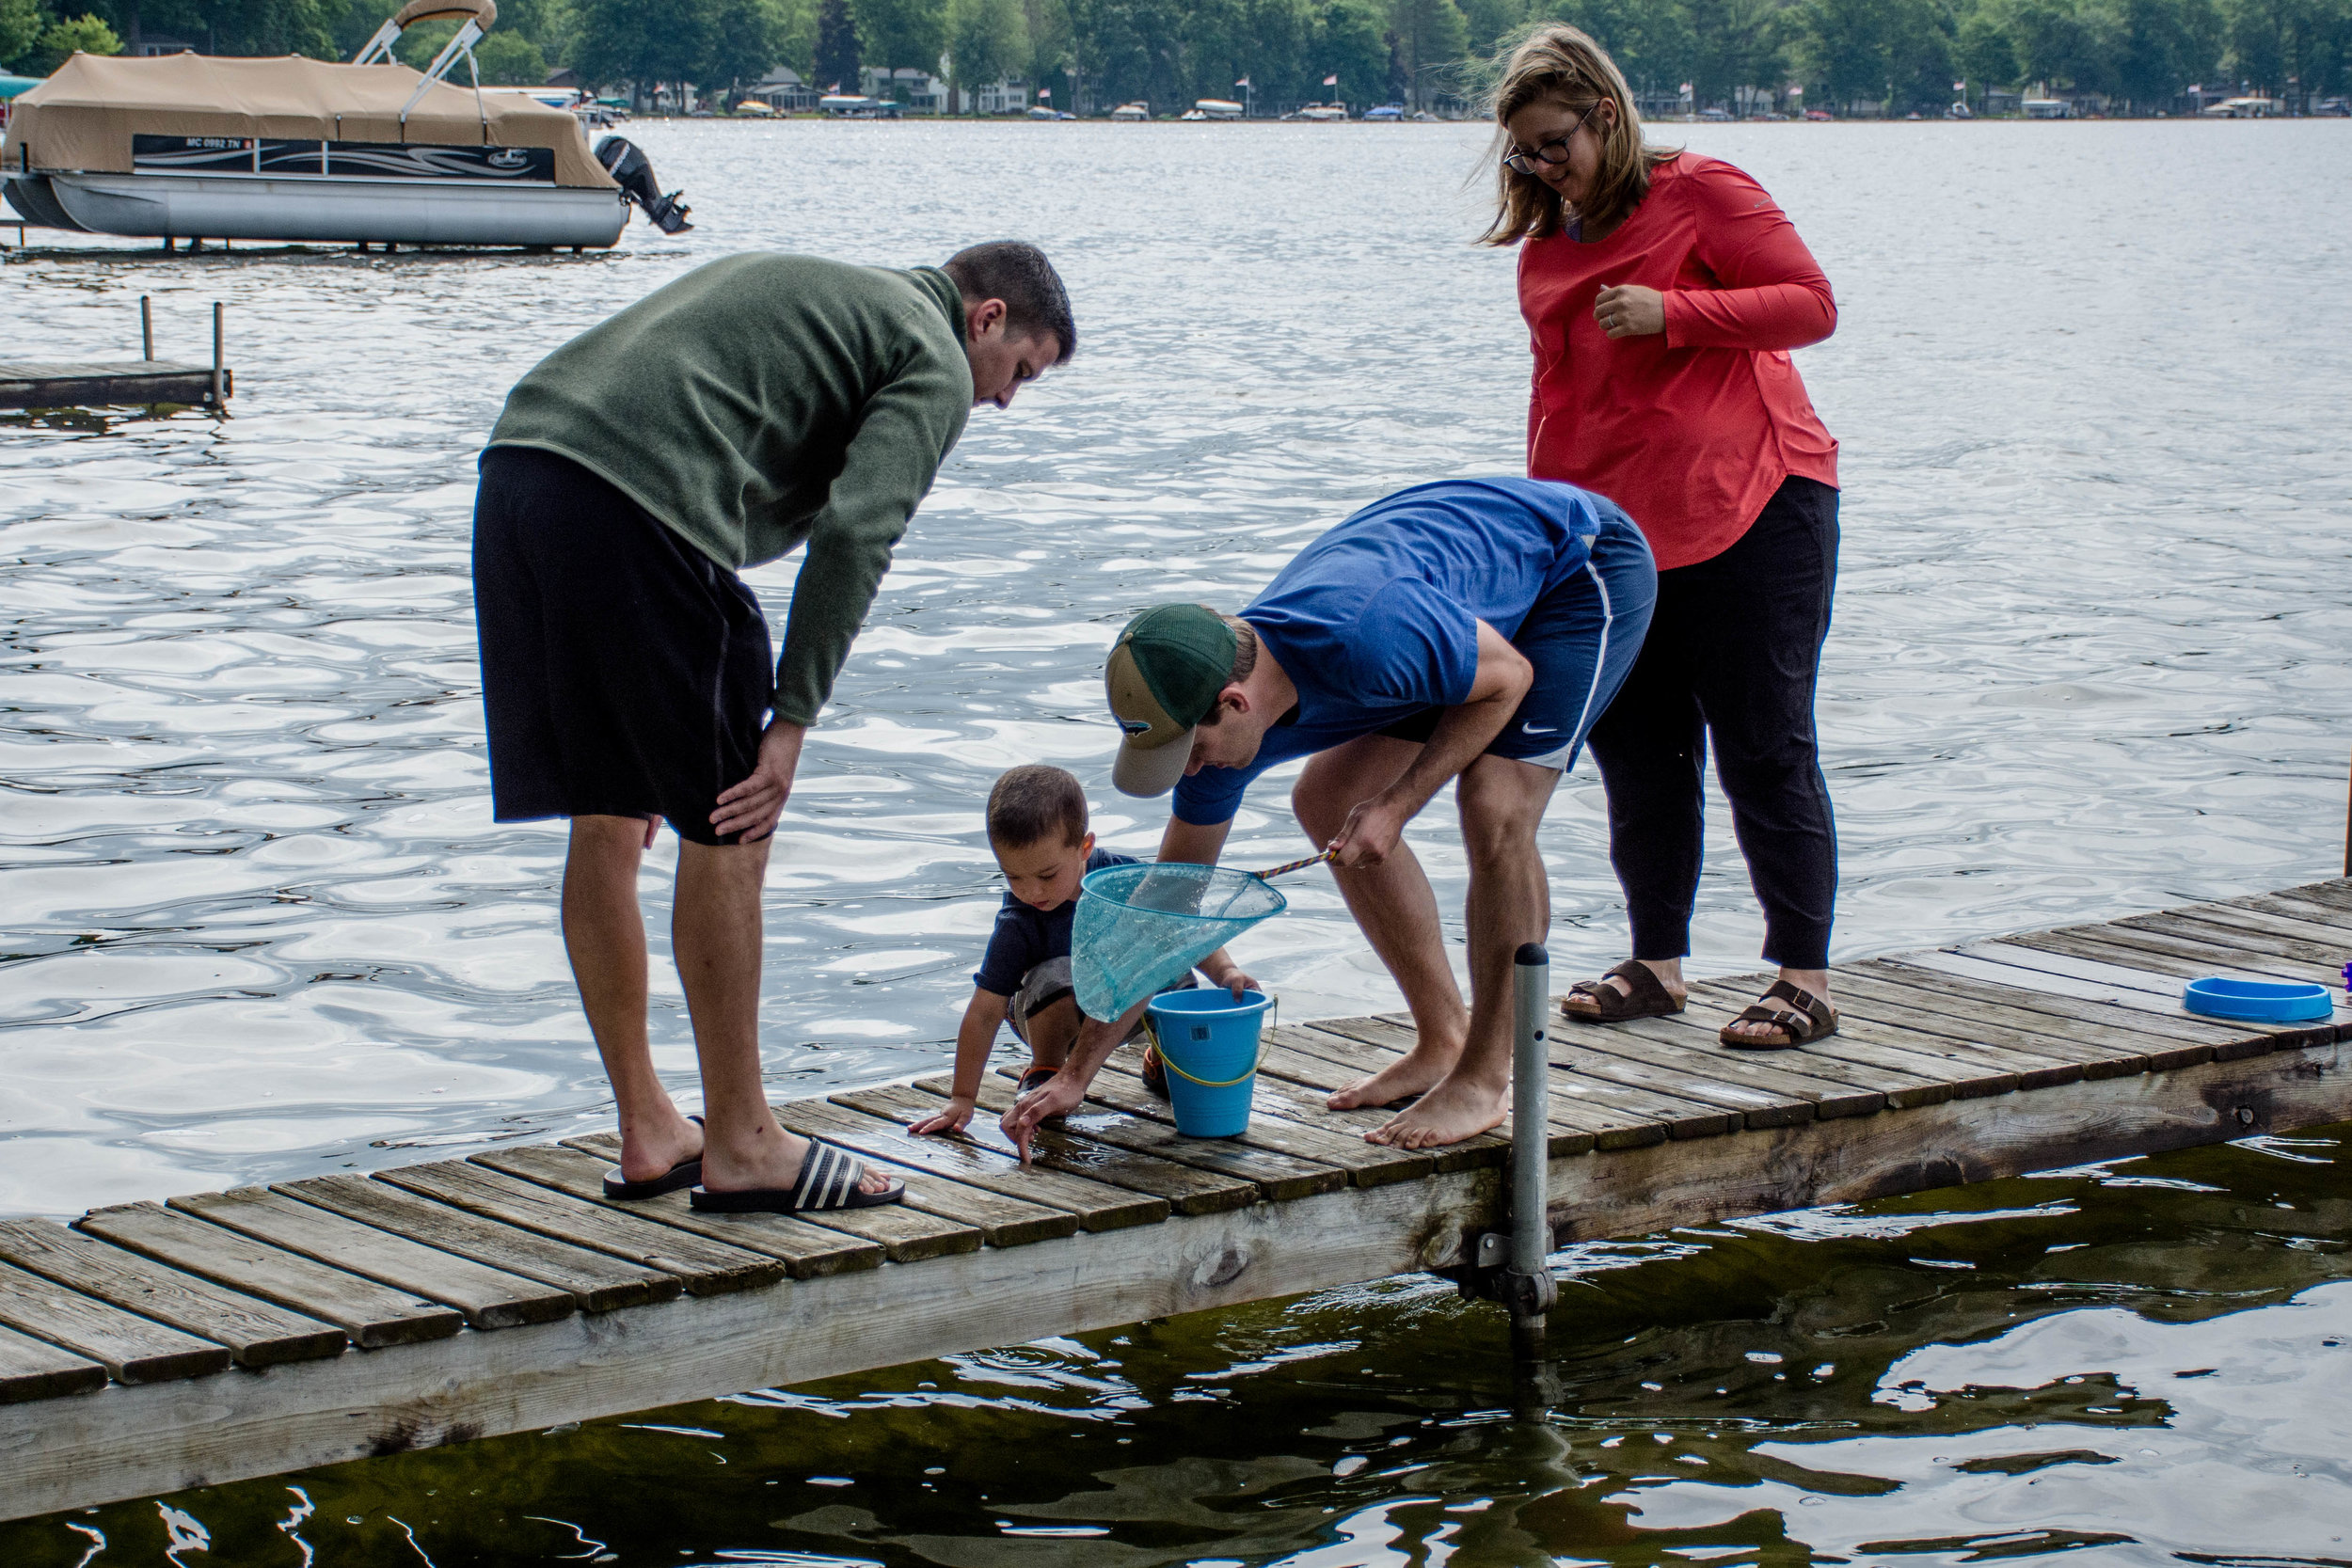 Learning to catch minnows with his auntie, uncle & daddi, turned out to being a favorite activity of the week.